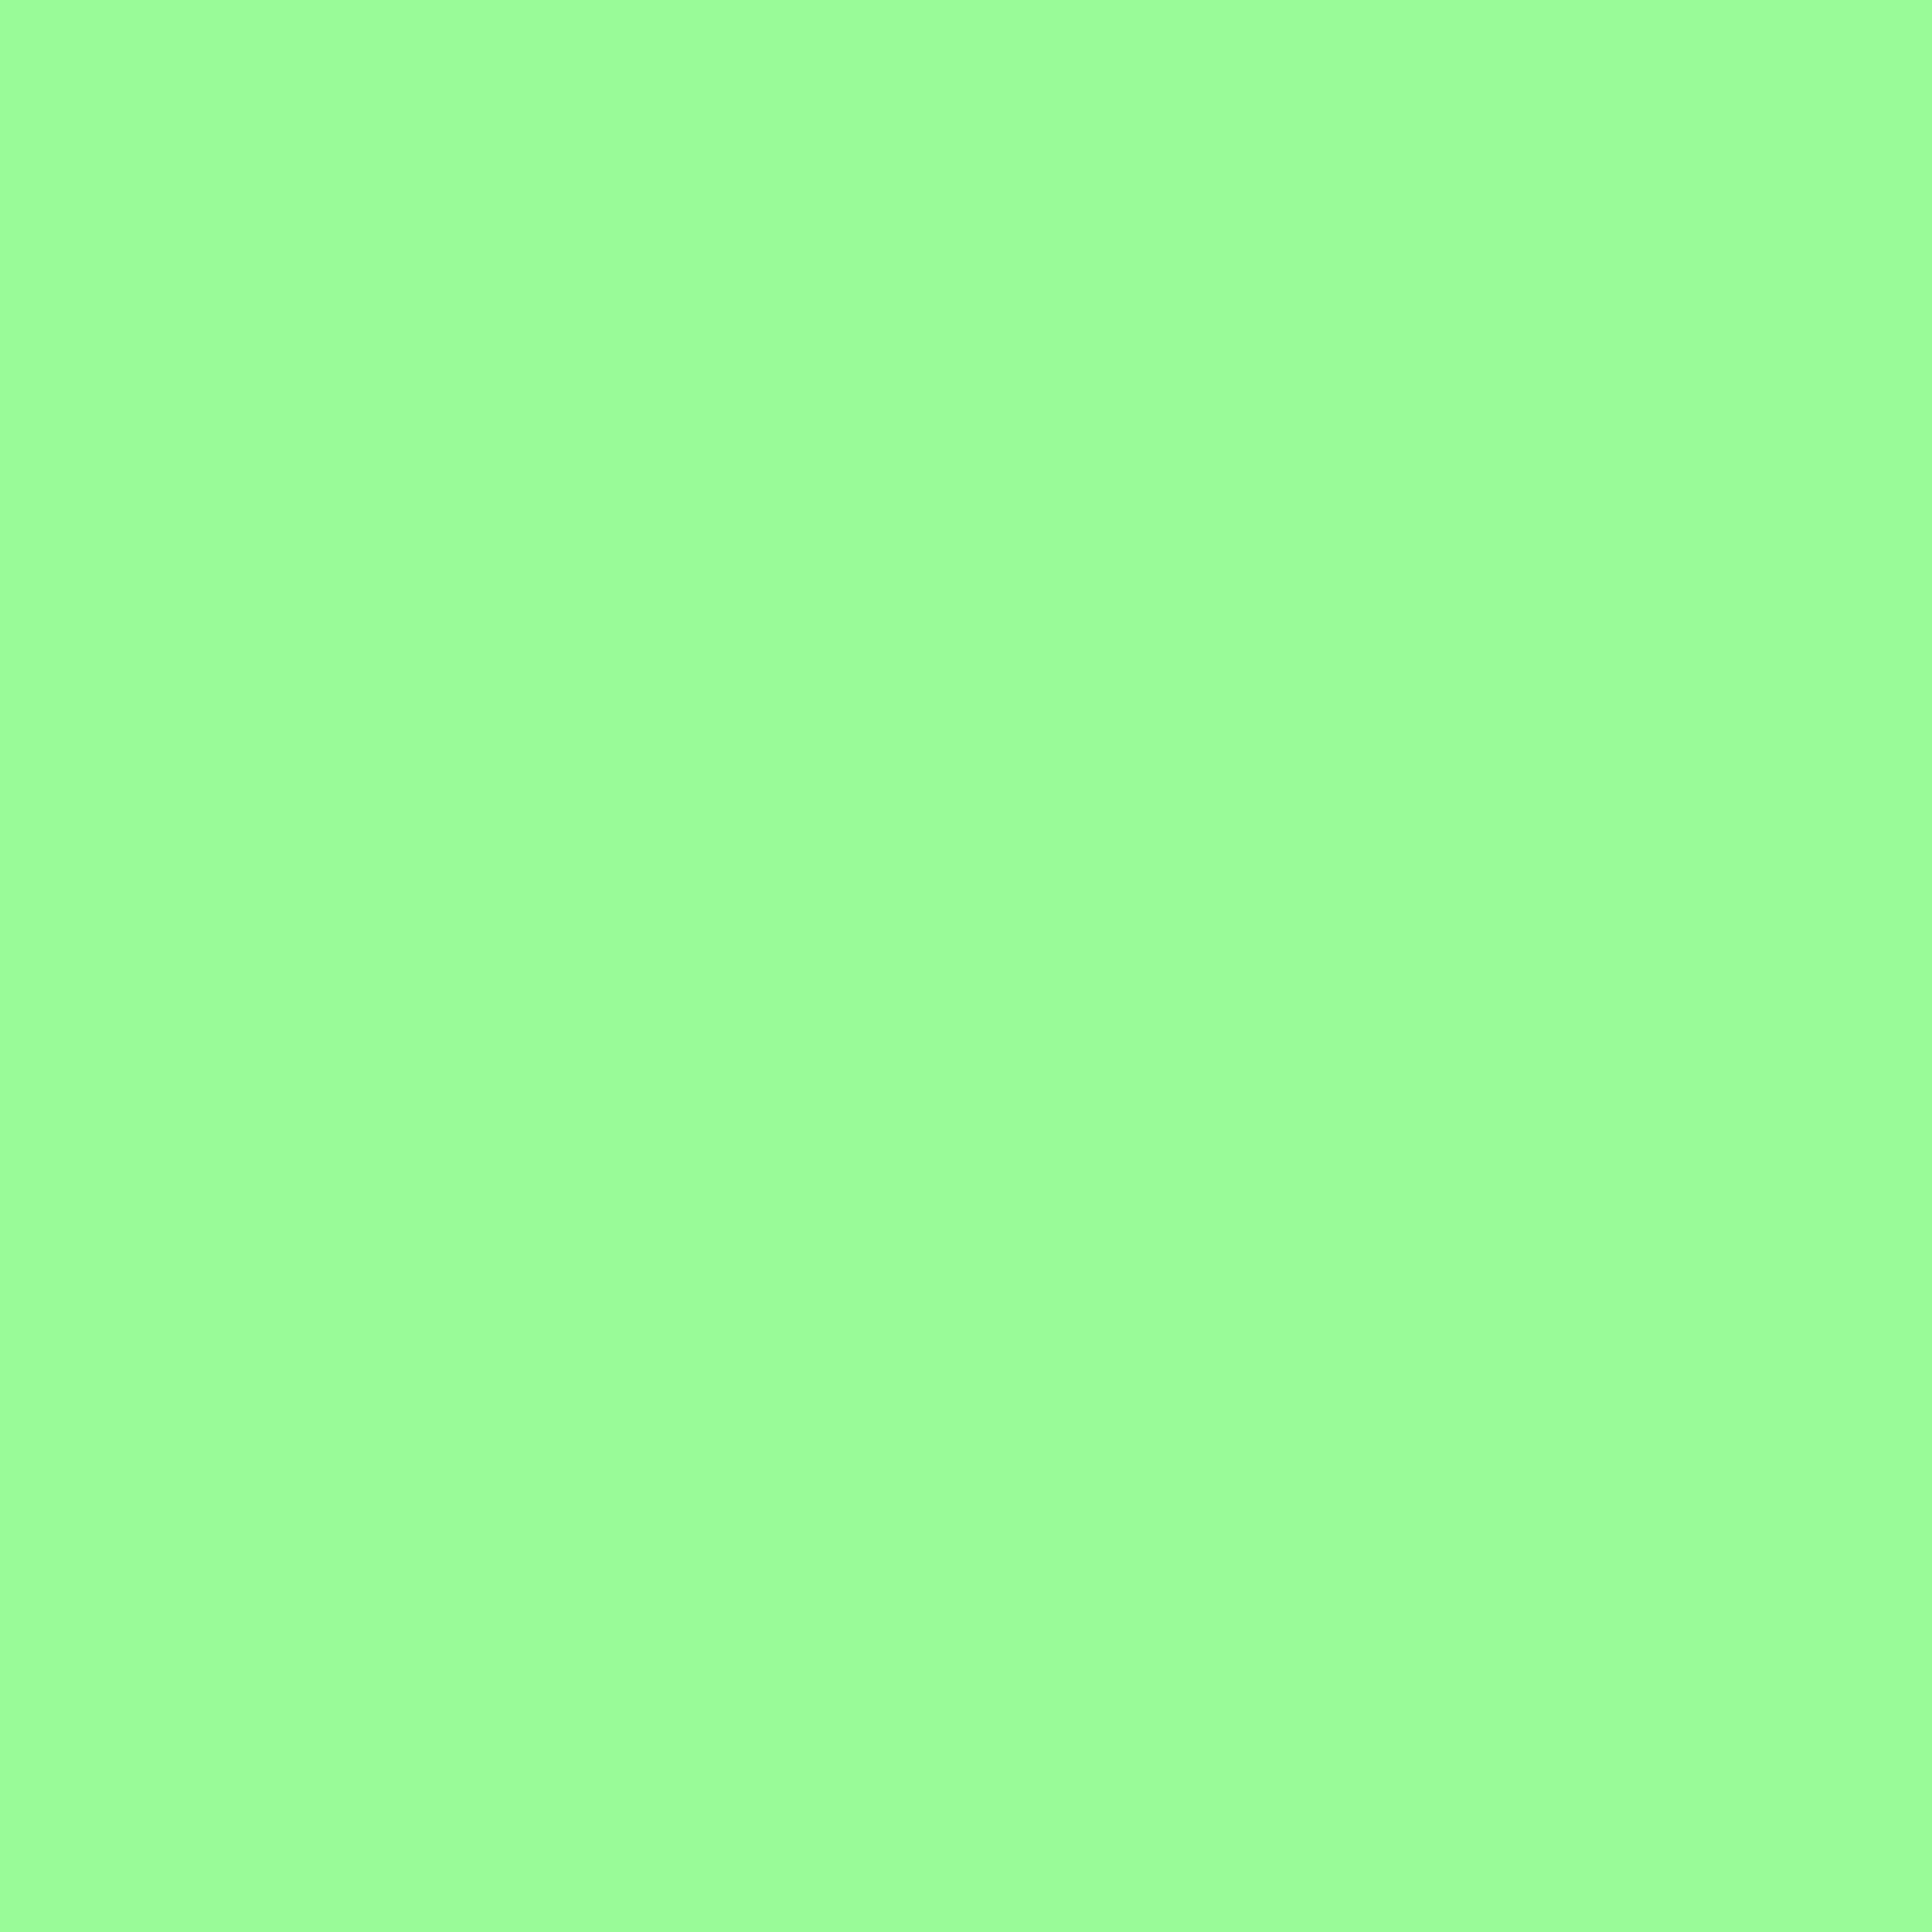 2048x2048 Pale Green Solid Color Background